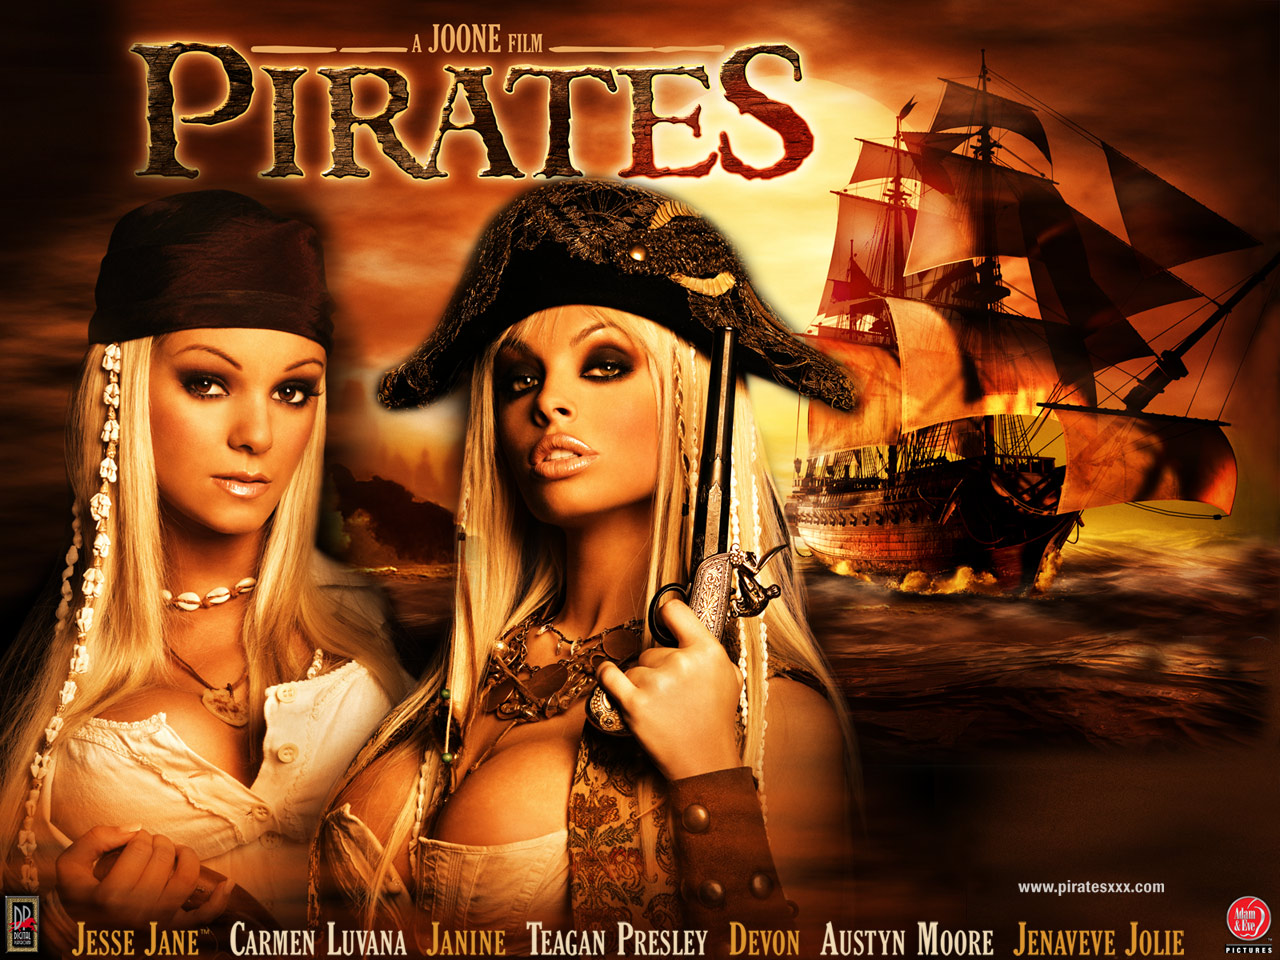 pirate porn website videos